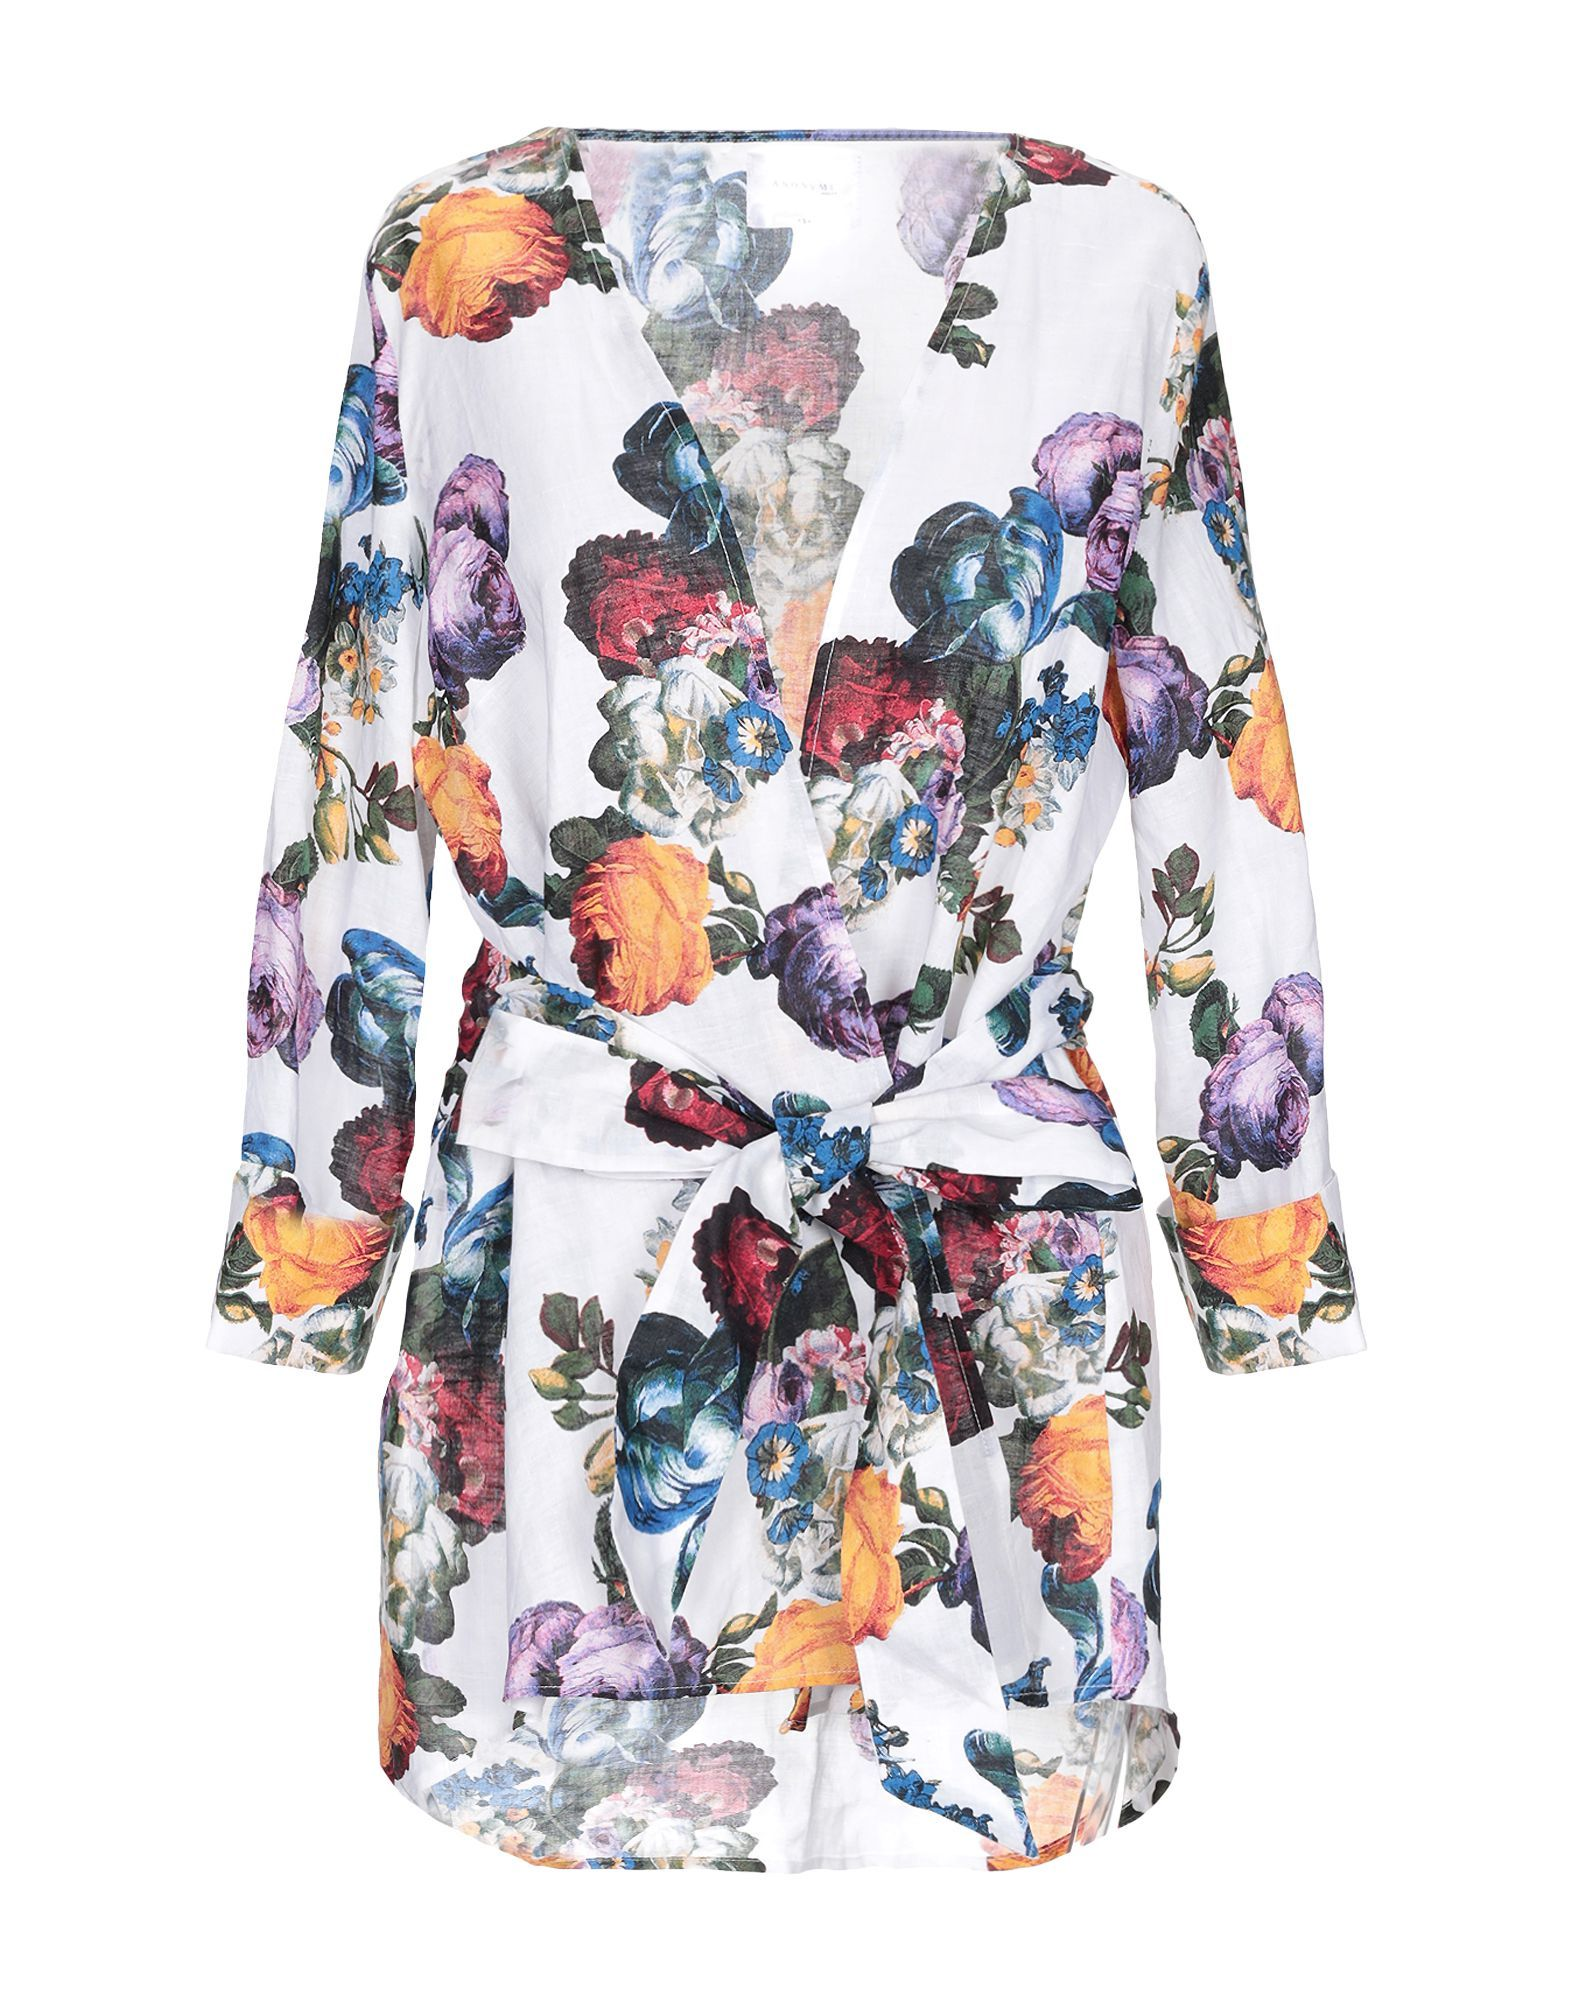 Anonyme Designers White Floral Design Jacket